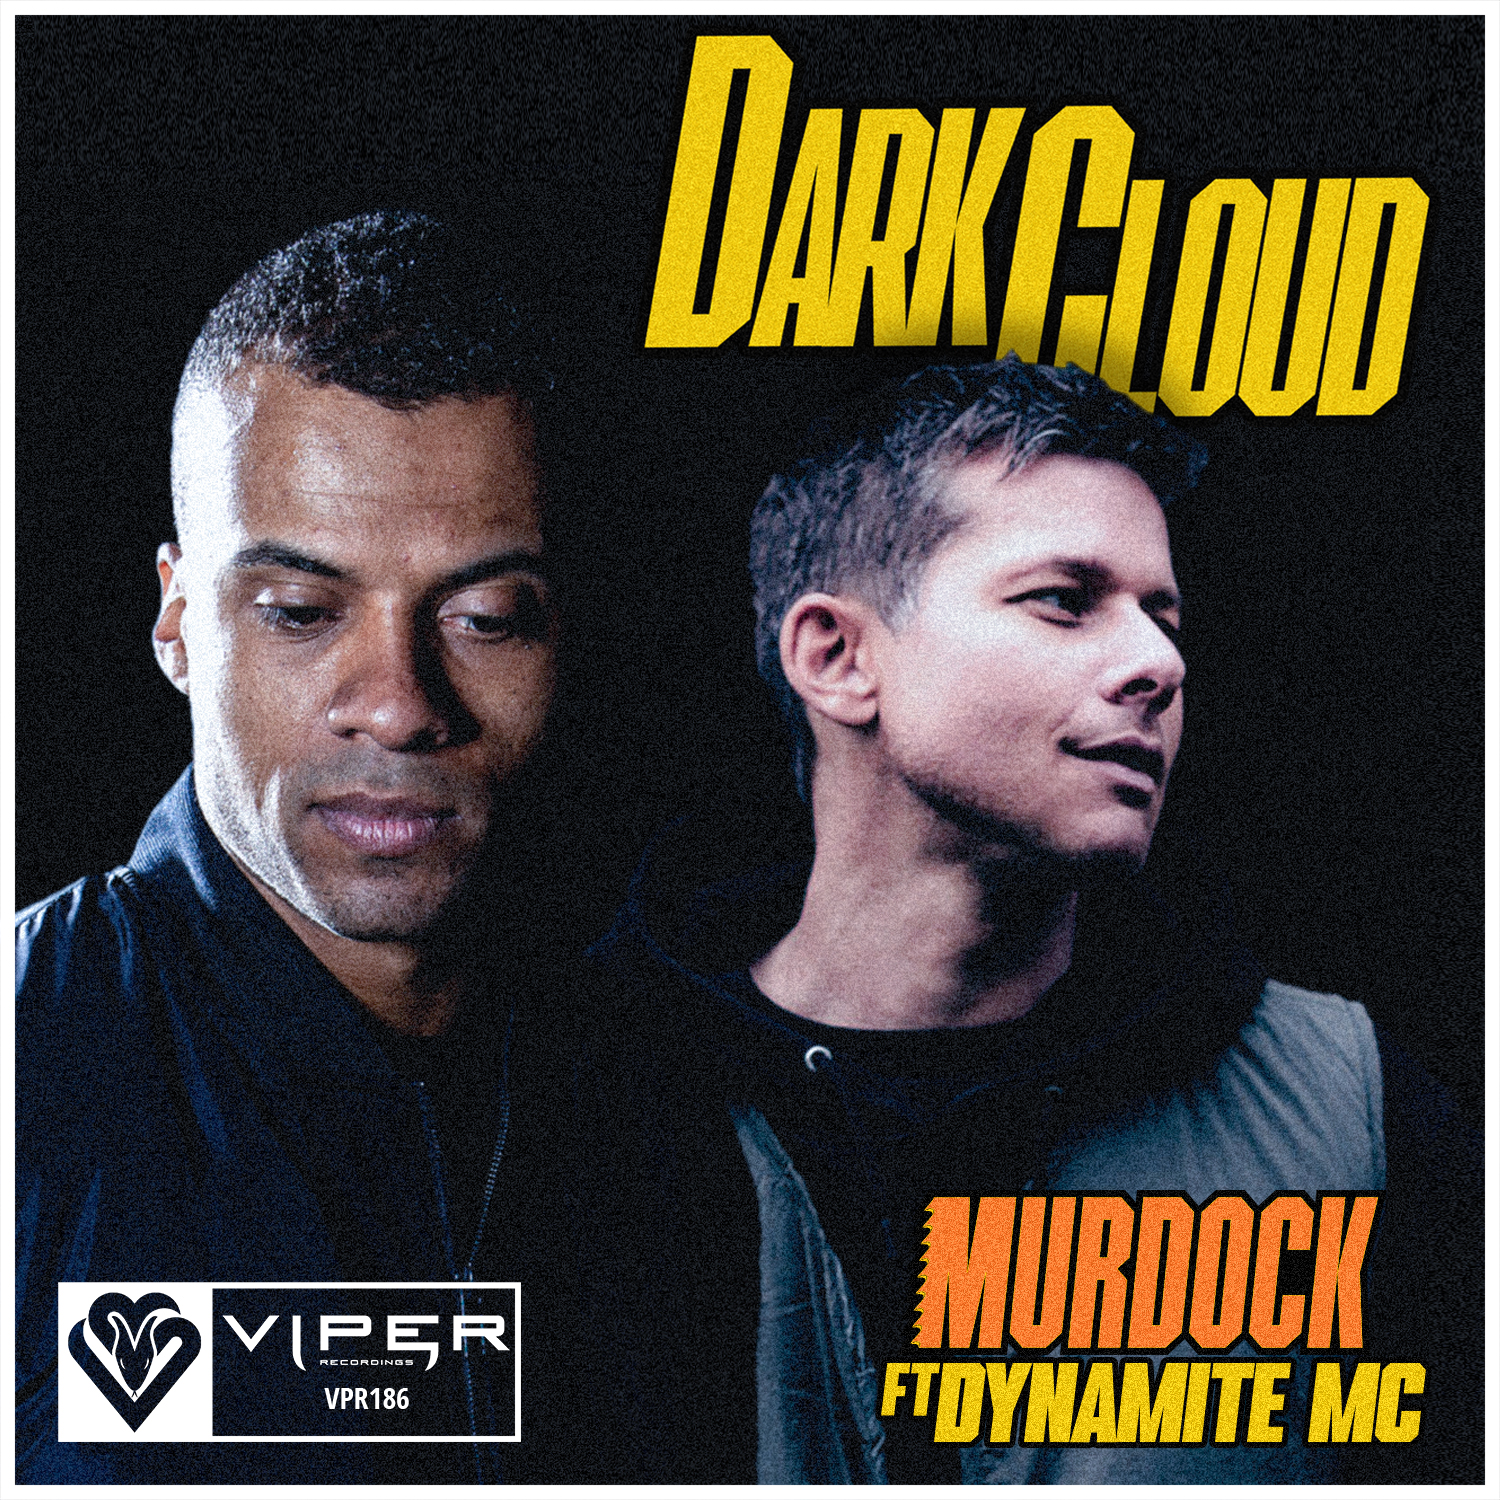 Murdock feat. Dynamite MC - Dark Cloud